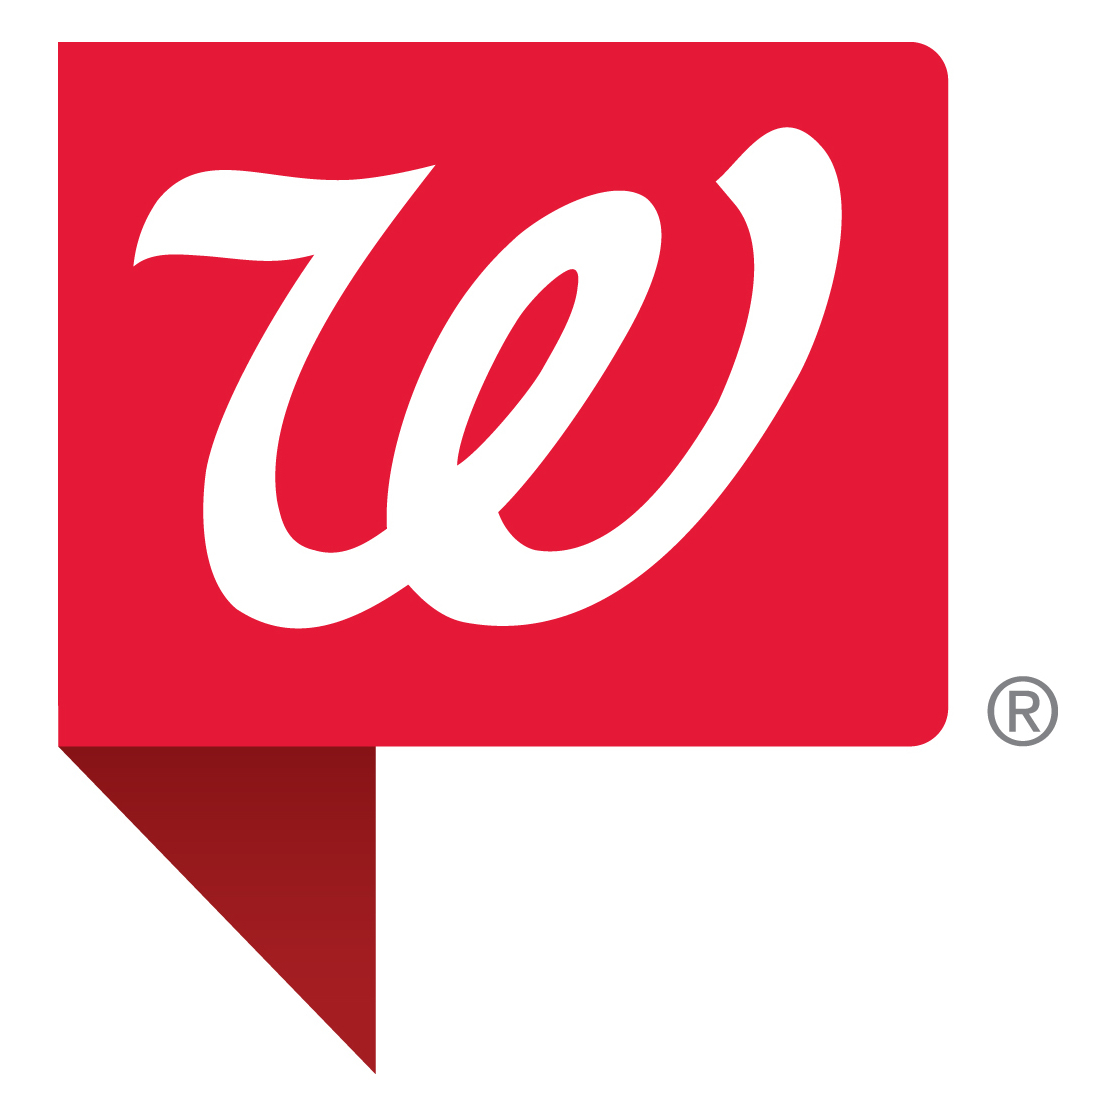 Walgreens - Pasco, WA - Pharmacist